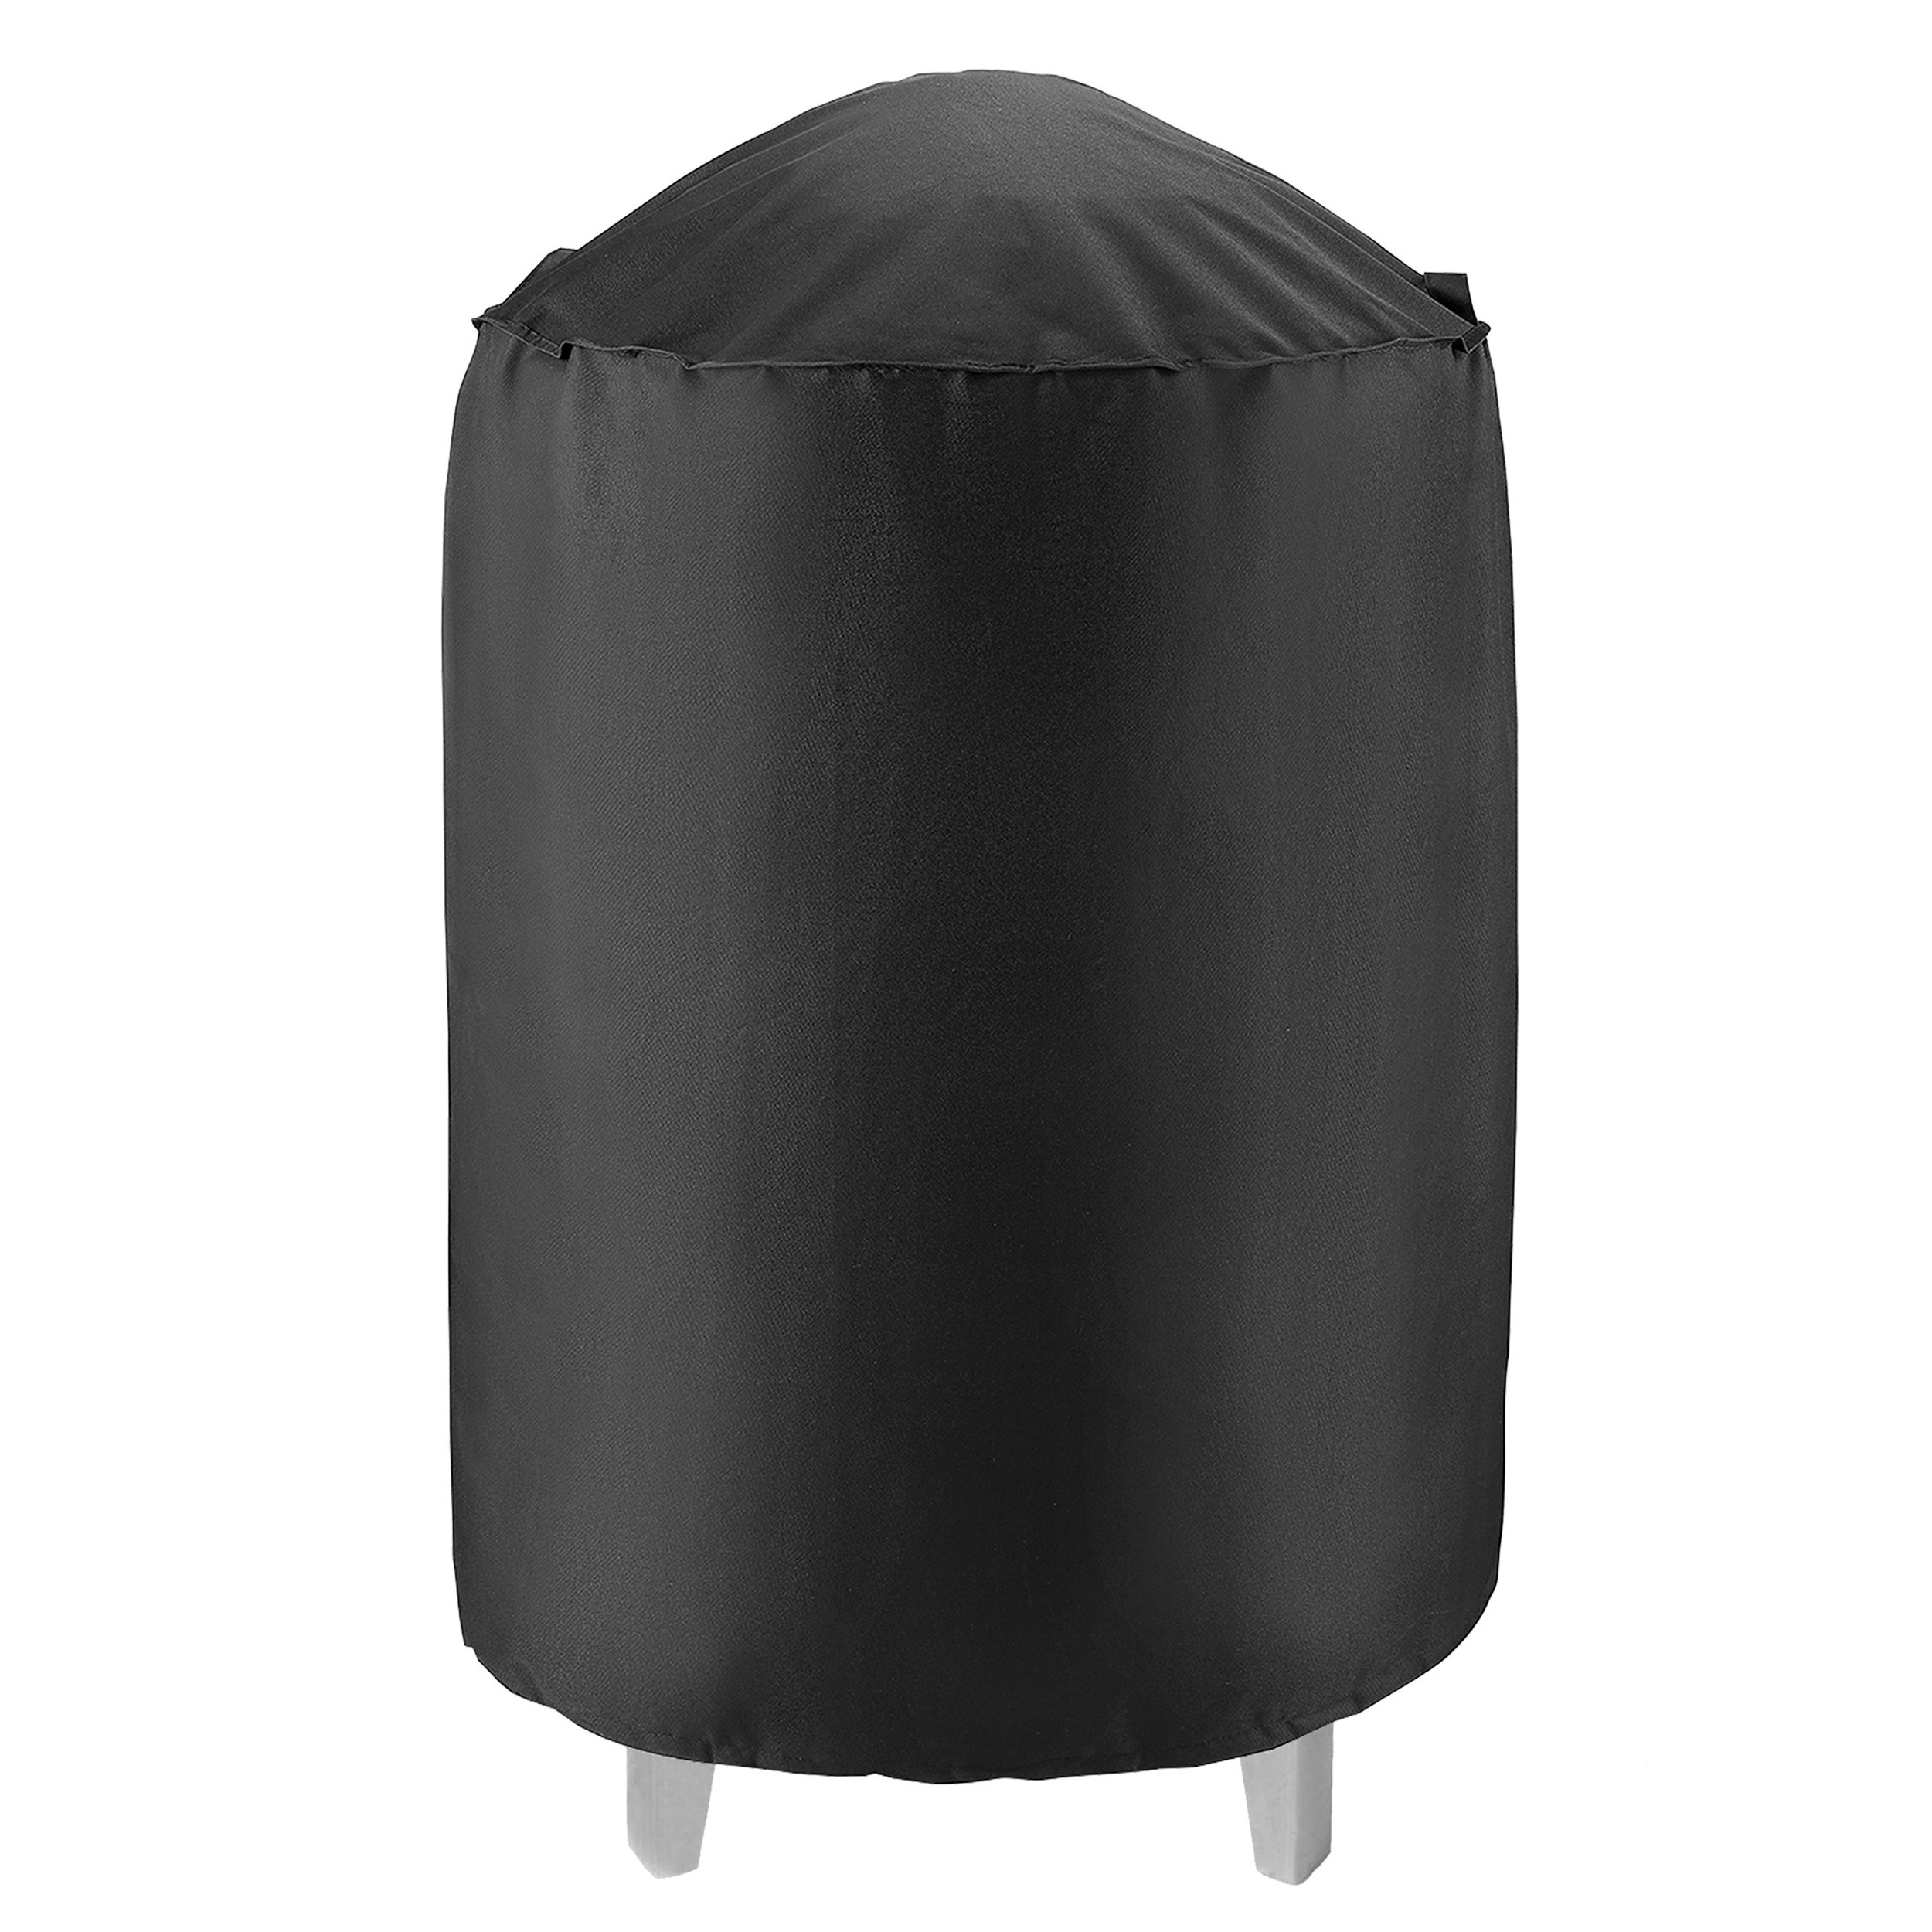 UNICOOK Heavy Duty Waterproof Dome Smoker Cover, 30'' Dia by 36'' H,Kettle Grill Cover, Barrel Cover,Water Smoker Cover,Fit Grill/Smoker for Weber Char-Broil and more